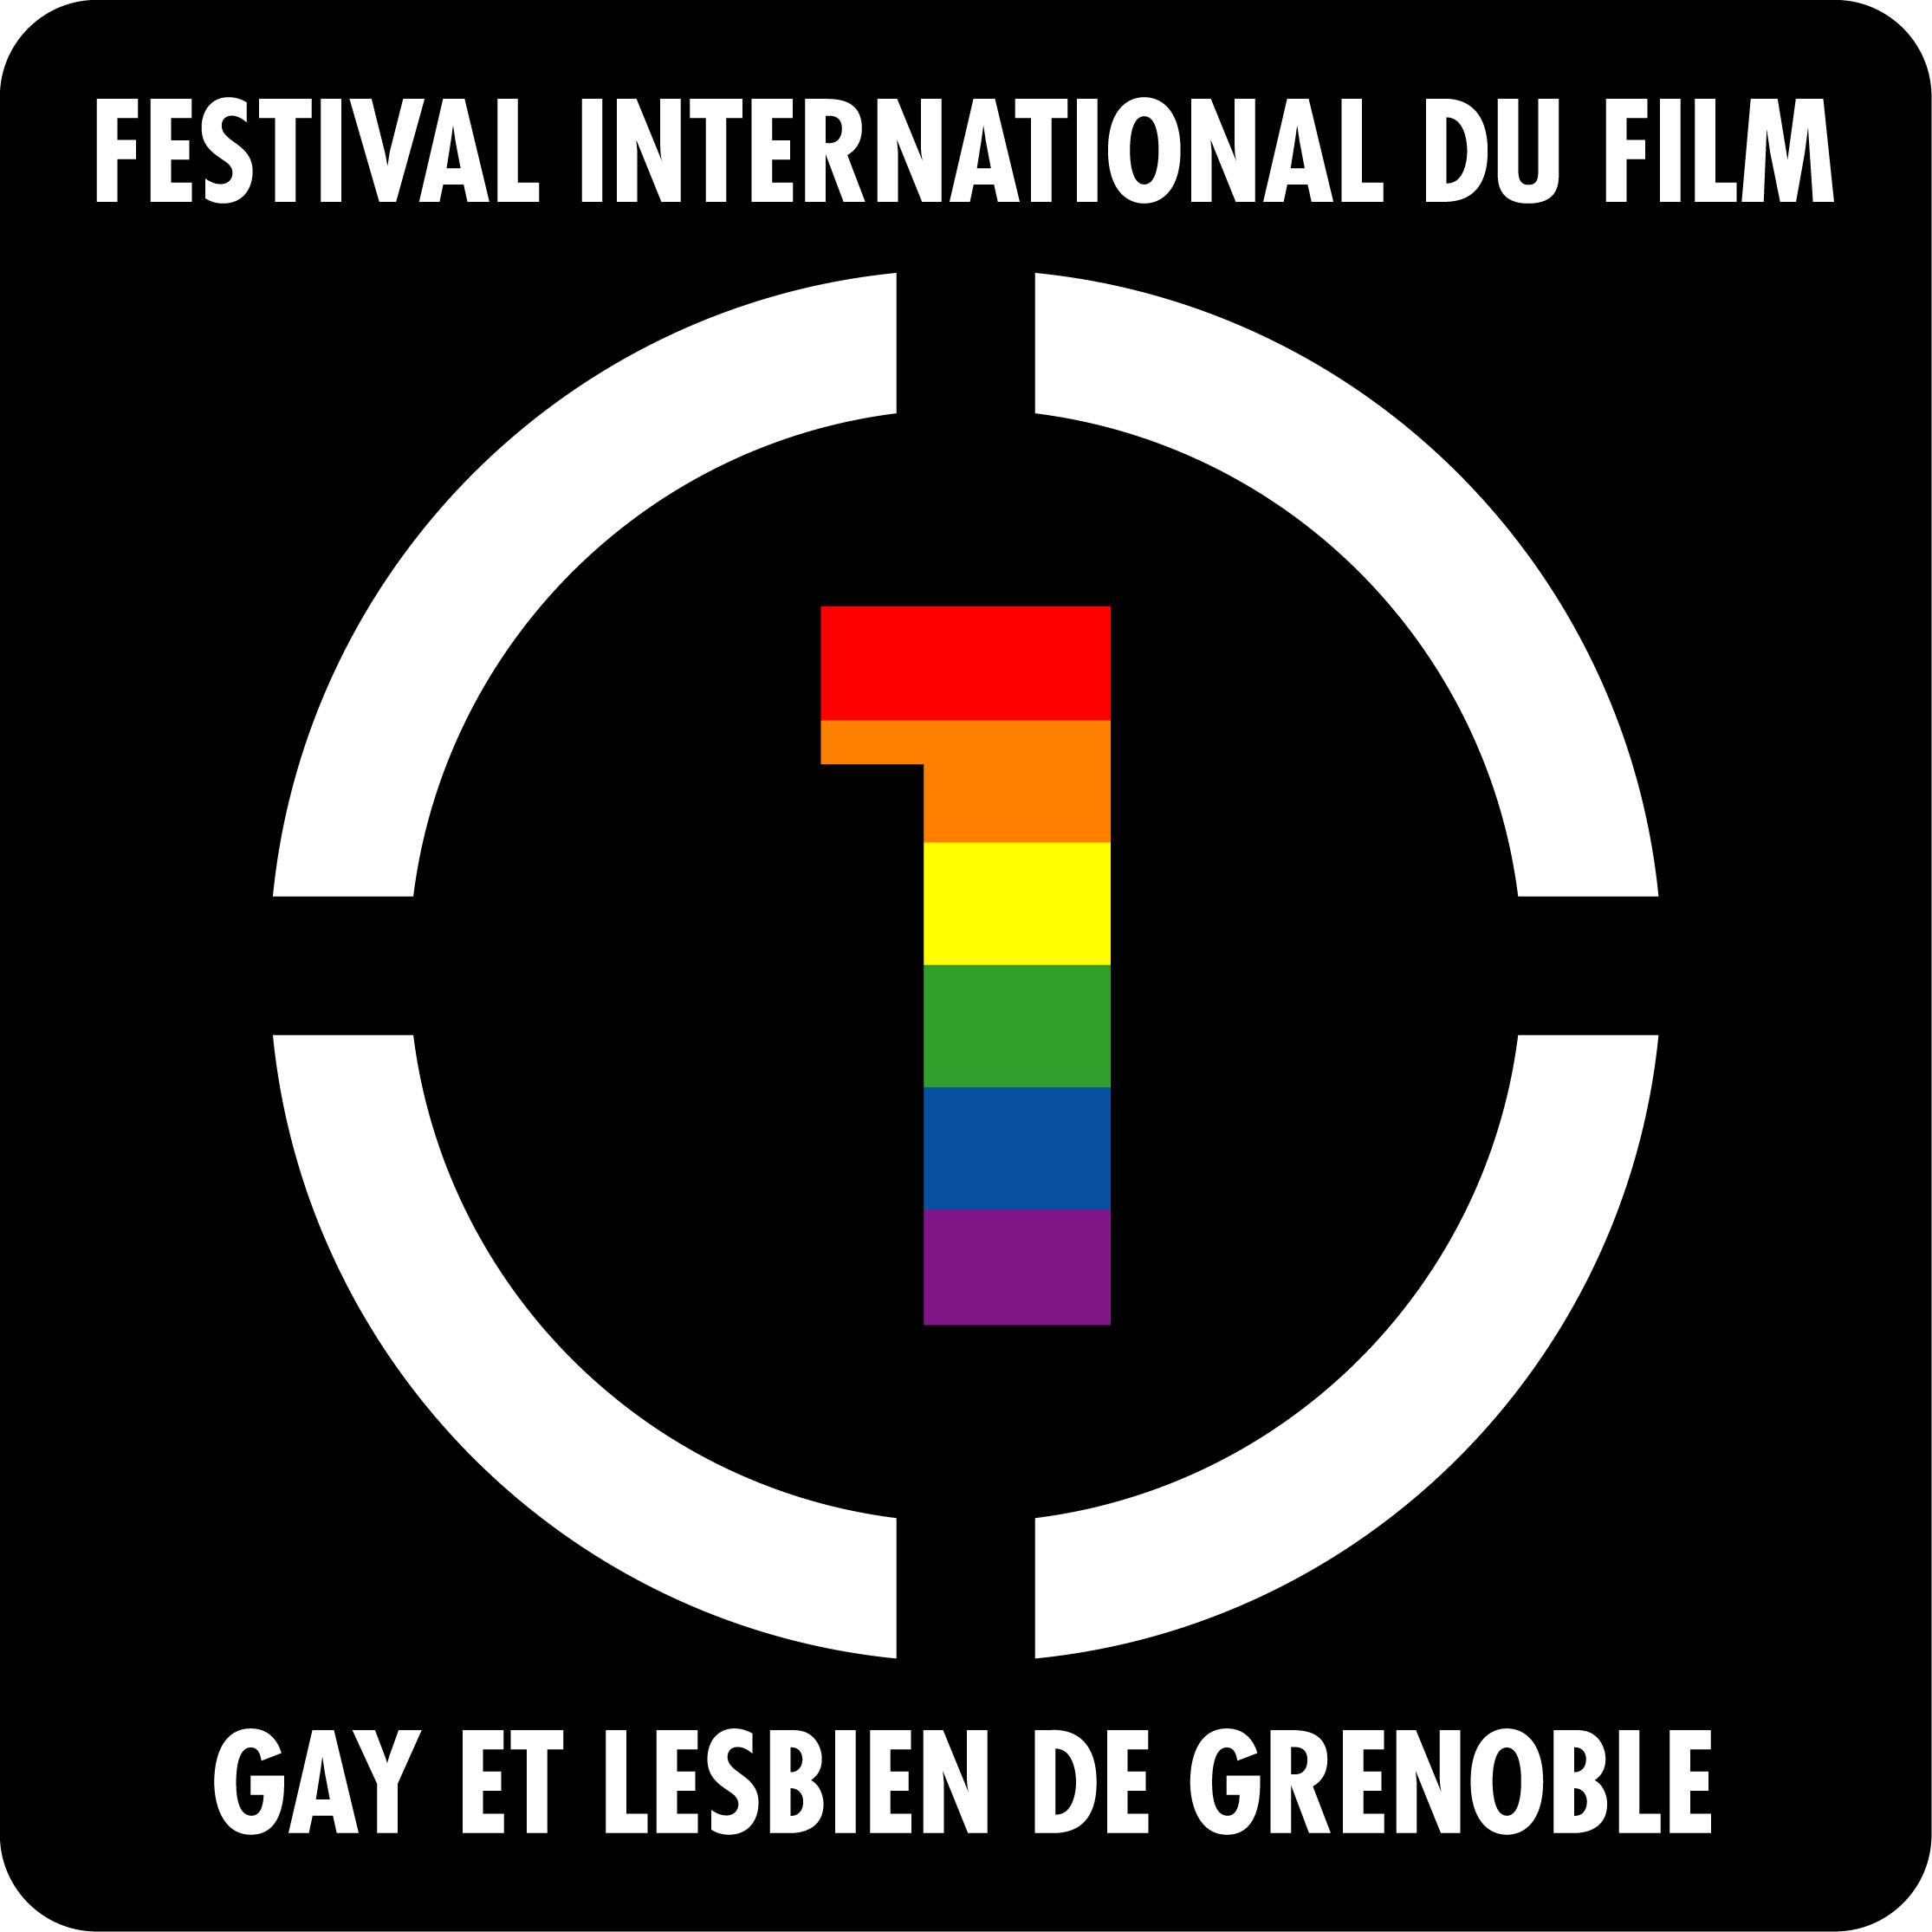 Festival International du film gay et lesbien